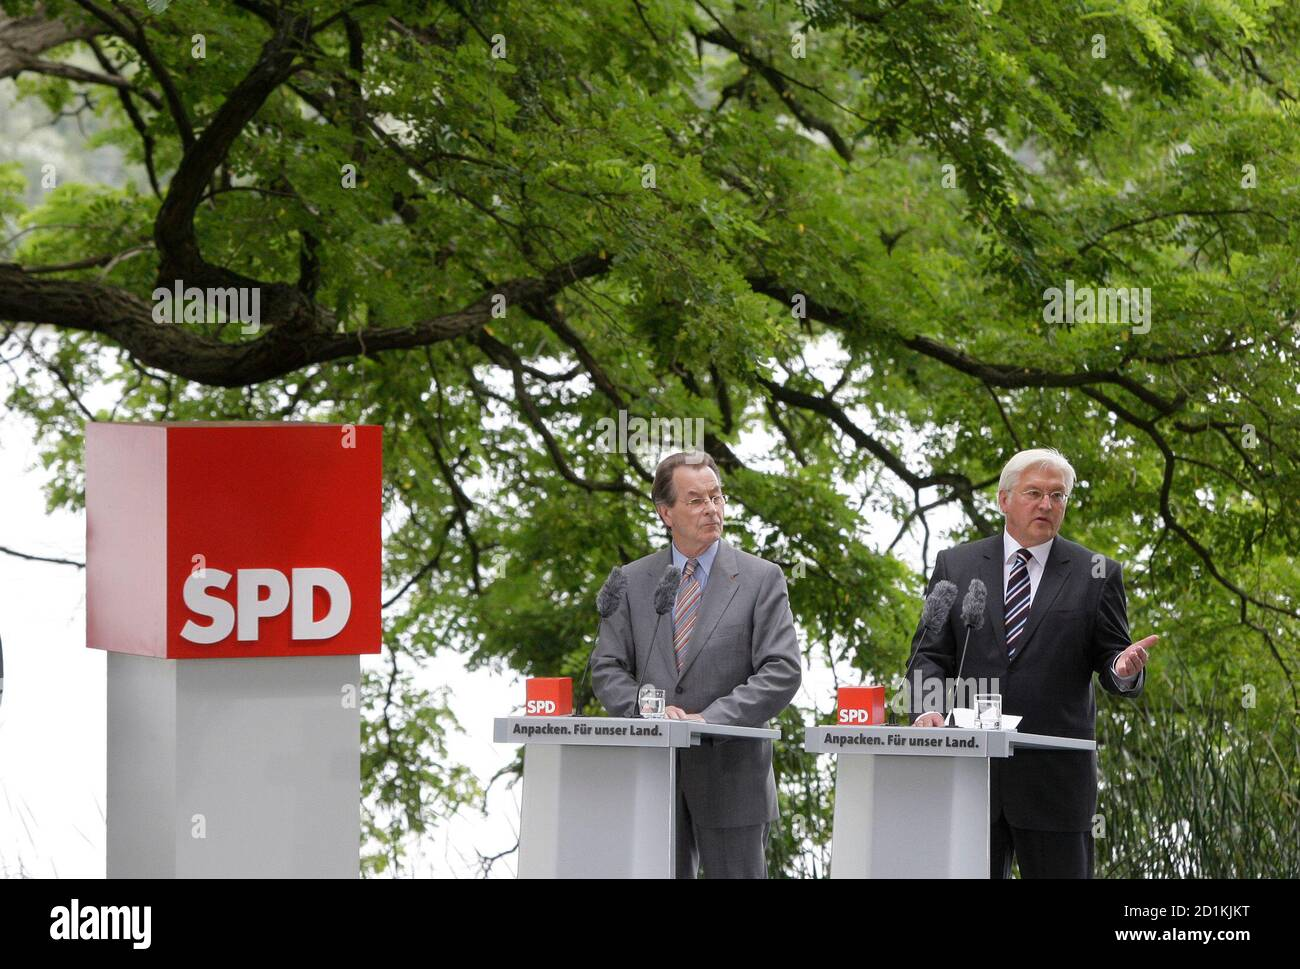 Frank-Walter Steinmeier (R), Germany's Social Democratic candidate for chancellor and SPD leader Franz Muentefering address the media in Potsdam, July 30, 2009.     REUTERS/Tobias Schwarz     (GERMANY POLITICS ELECTIONS) Foto Stock